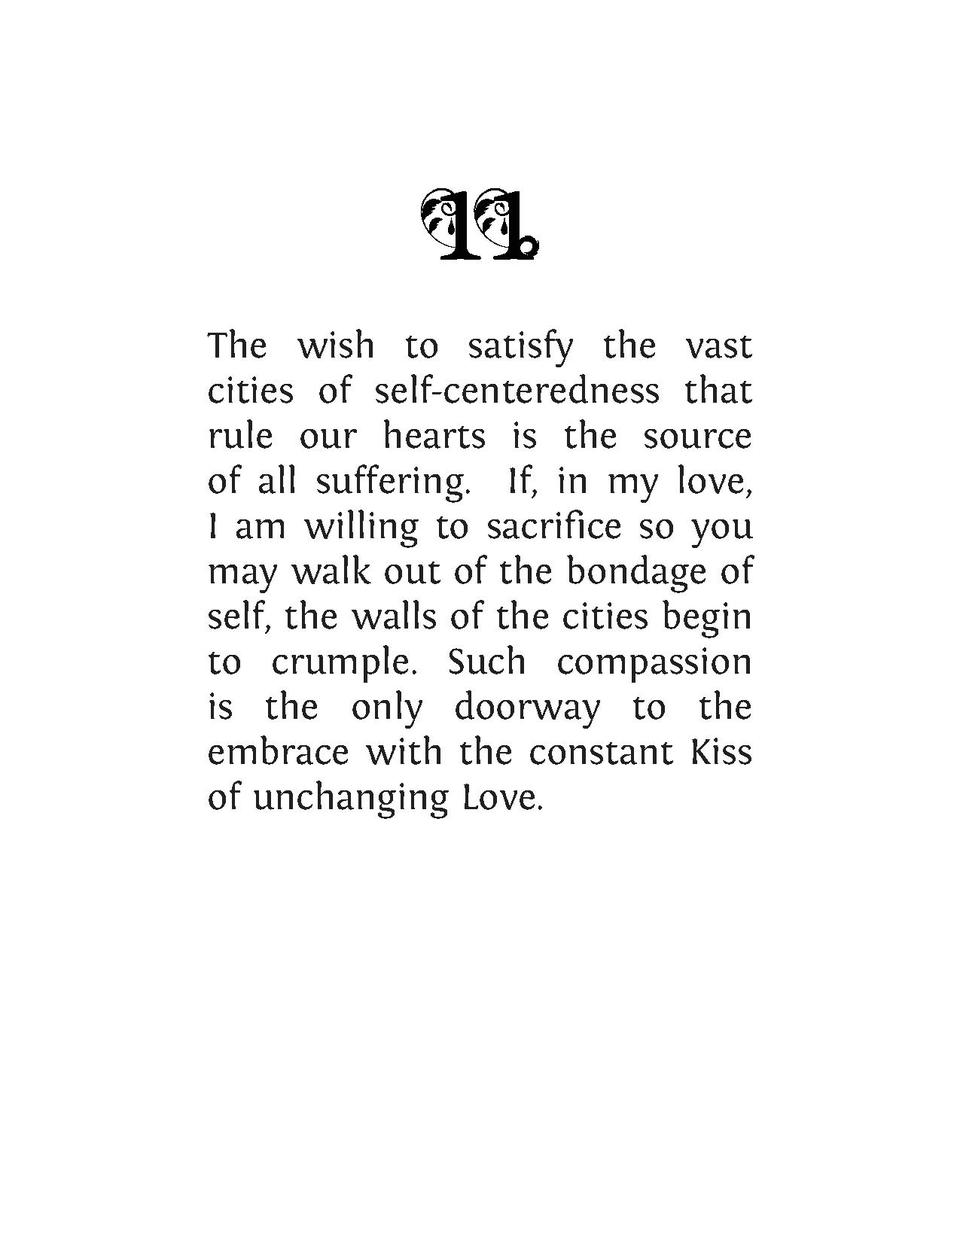 The wish to satisfy the vast cities of self-centeredness that rule our hearts is the source of all suffering. If, in my lo...